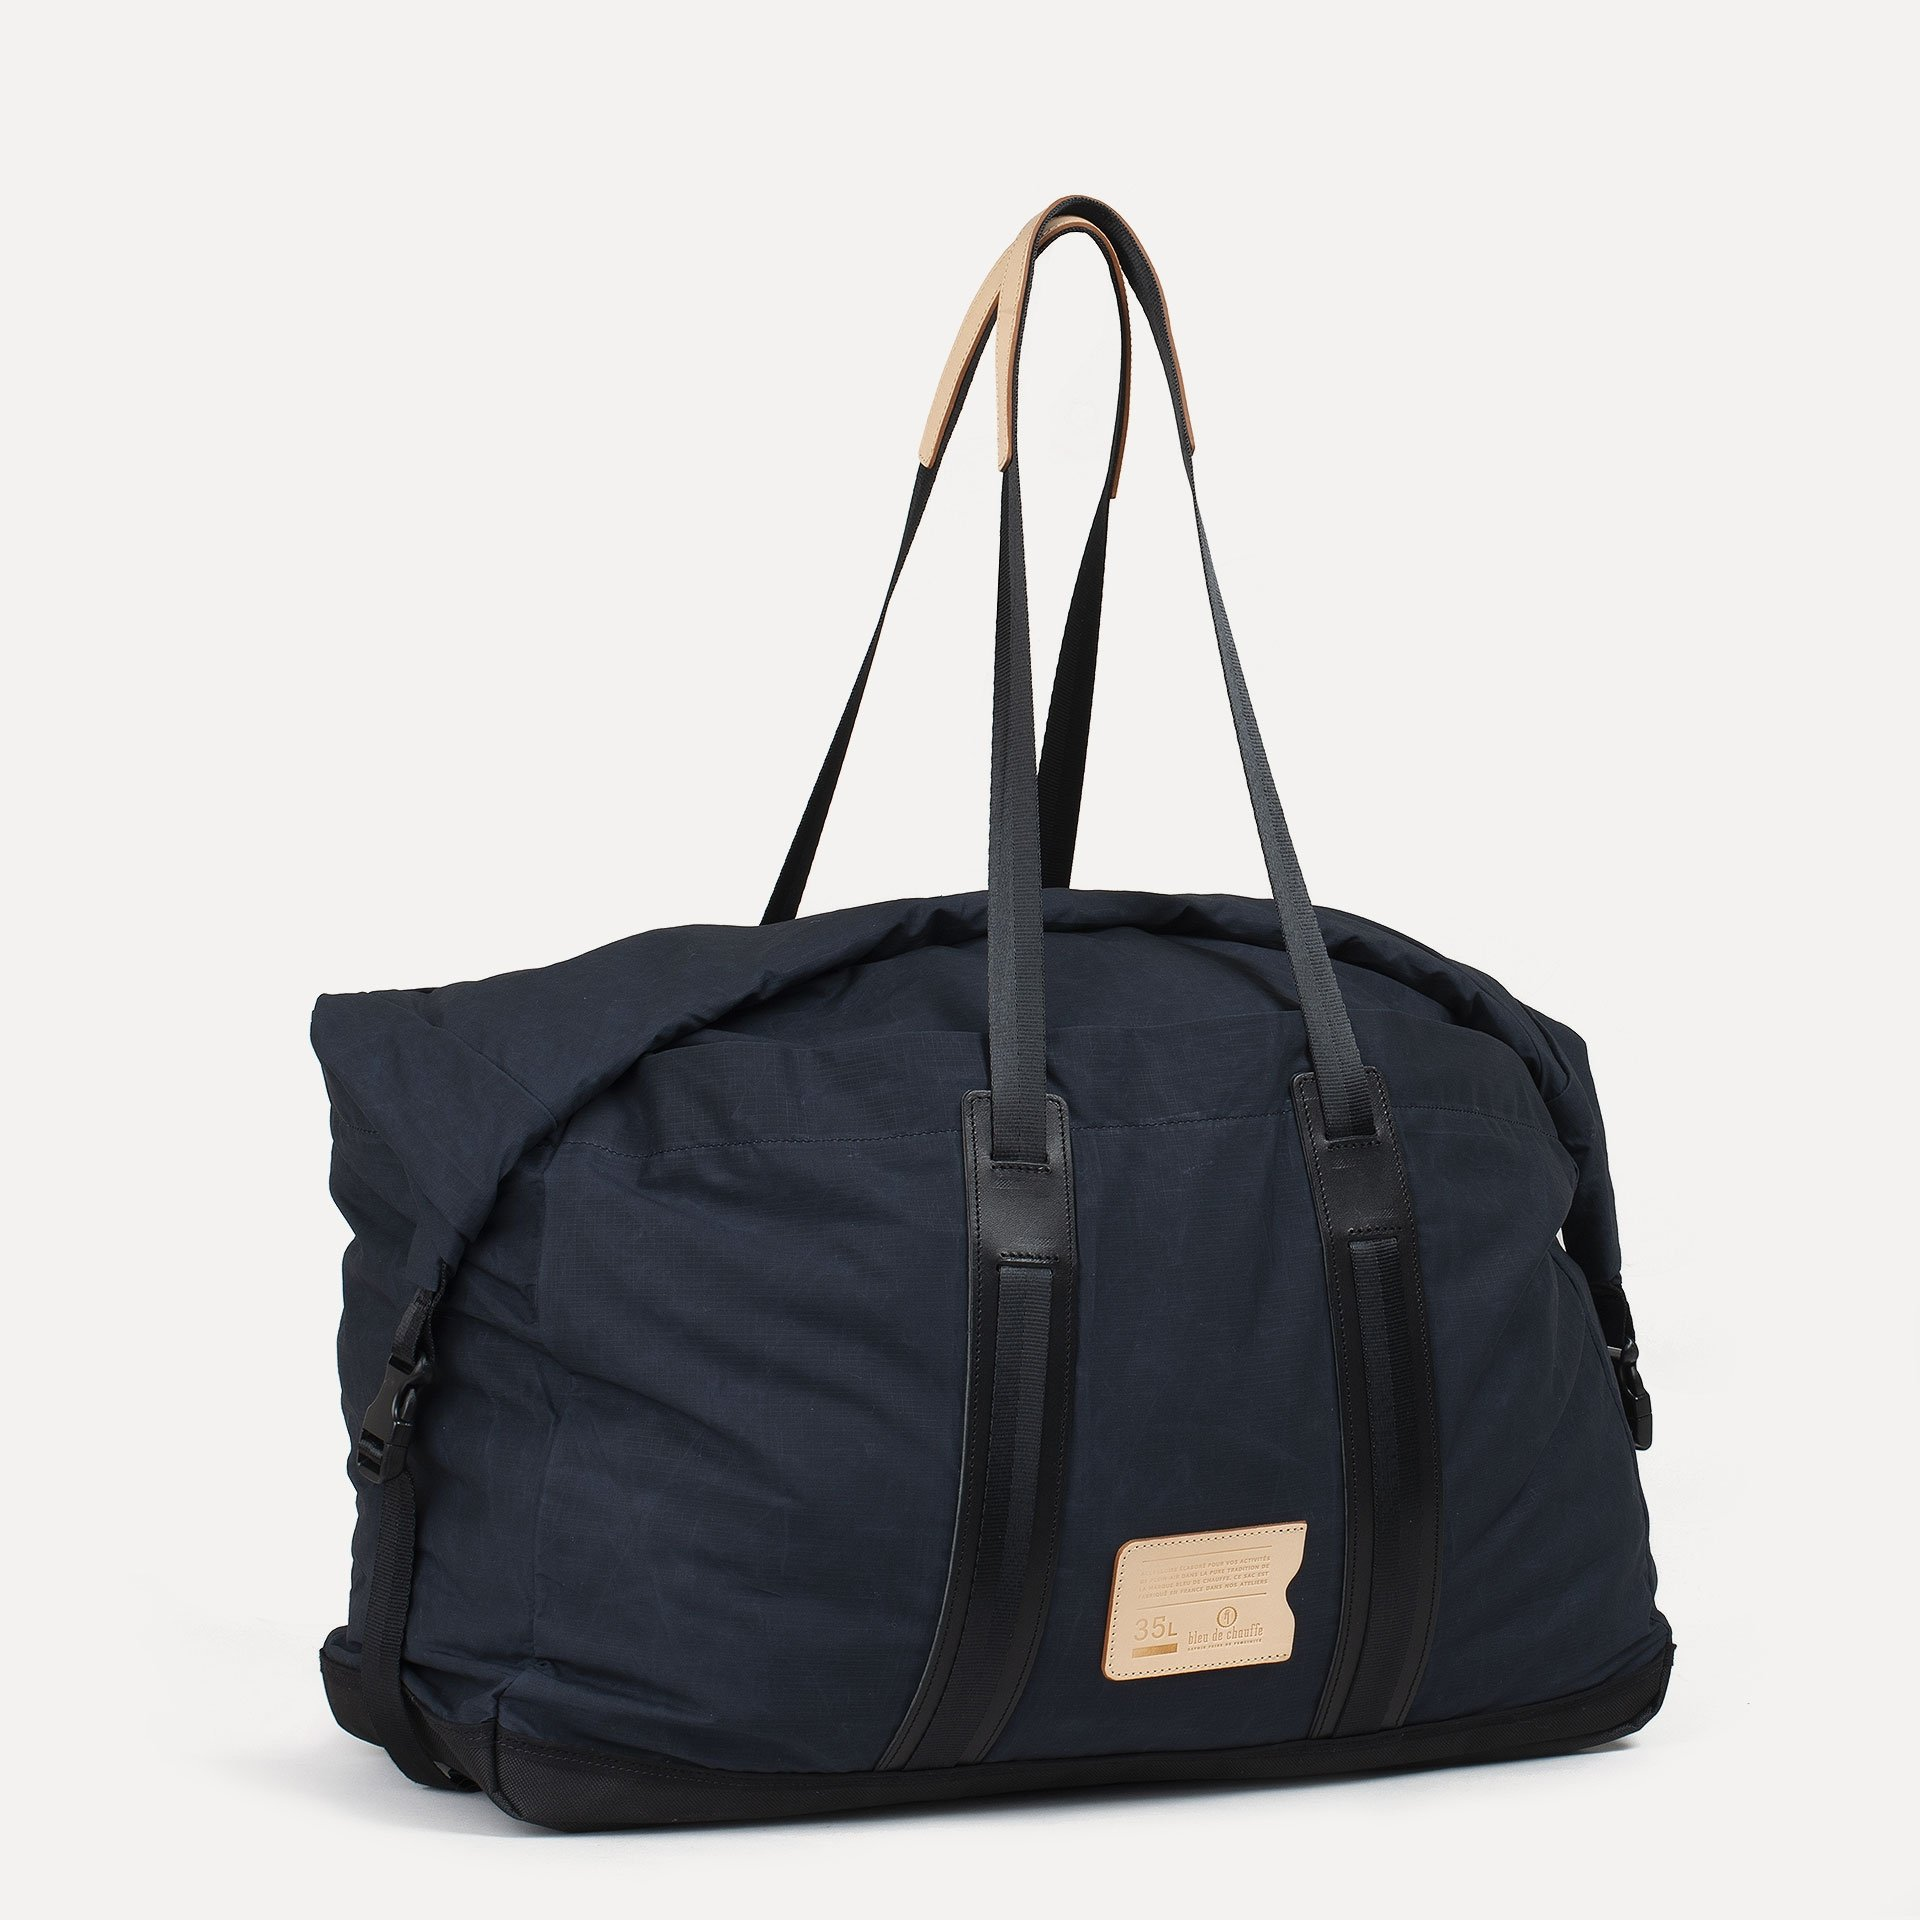 35L Baroud Travel bag - Hague Blue (image n°2)